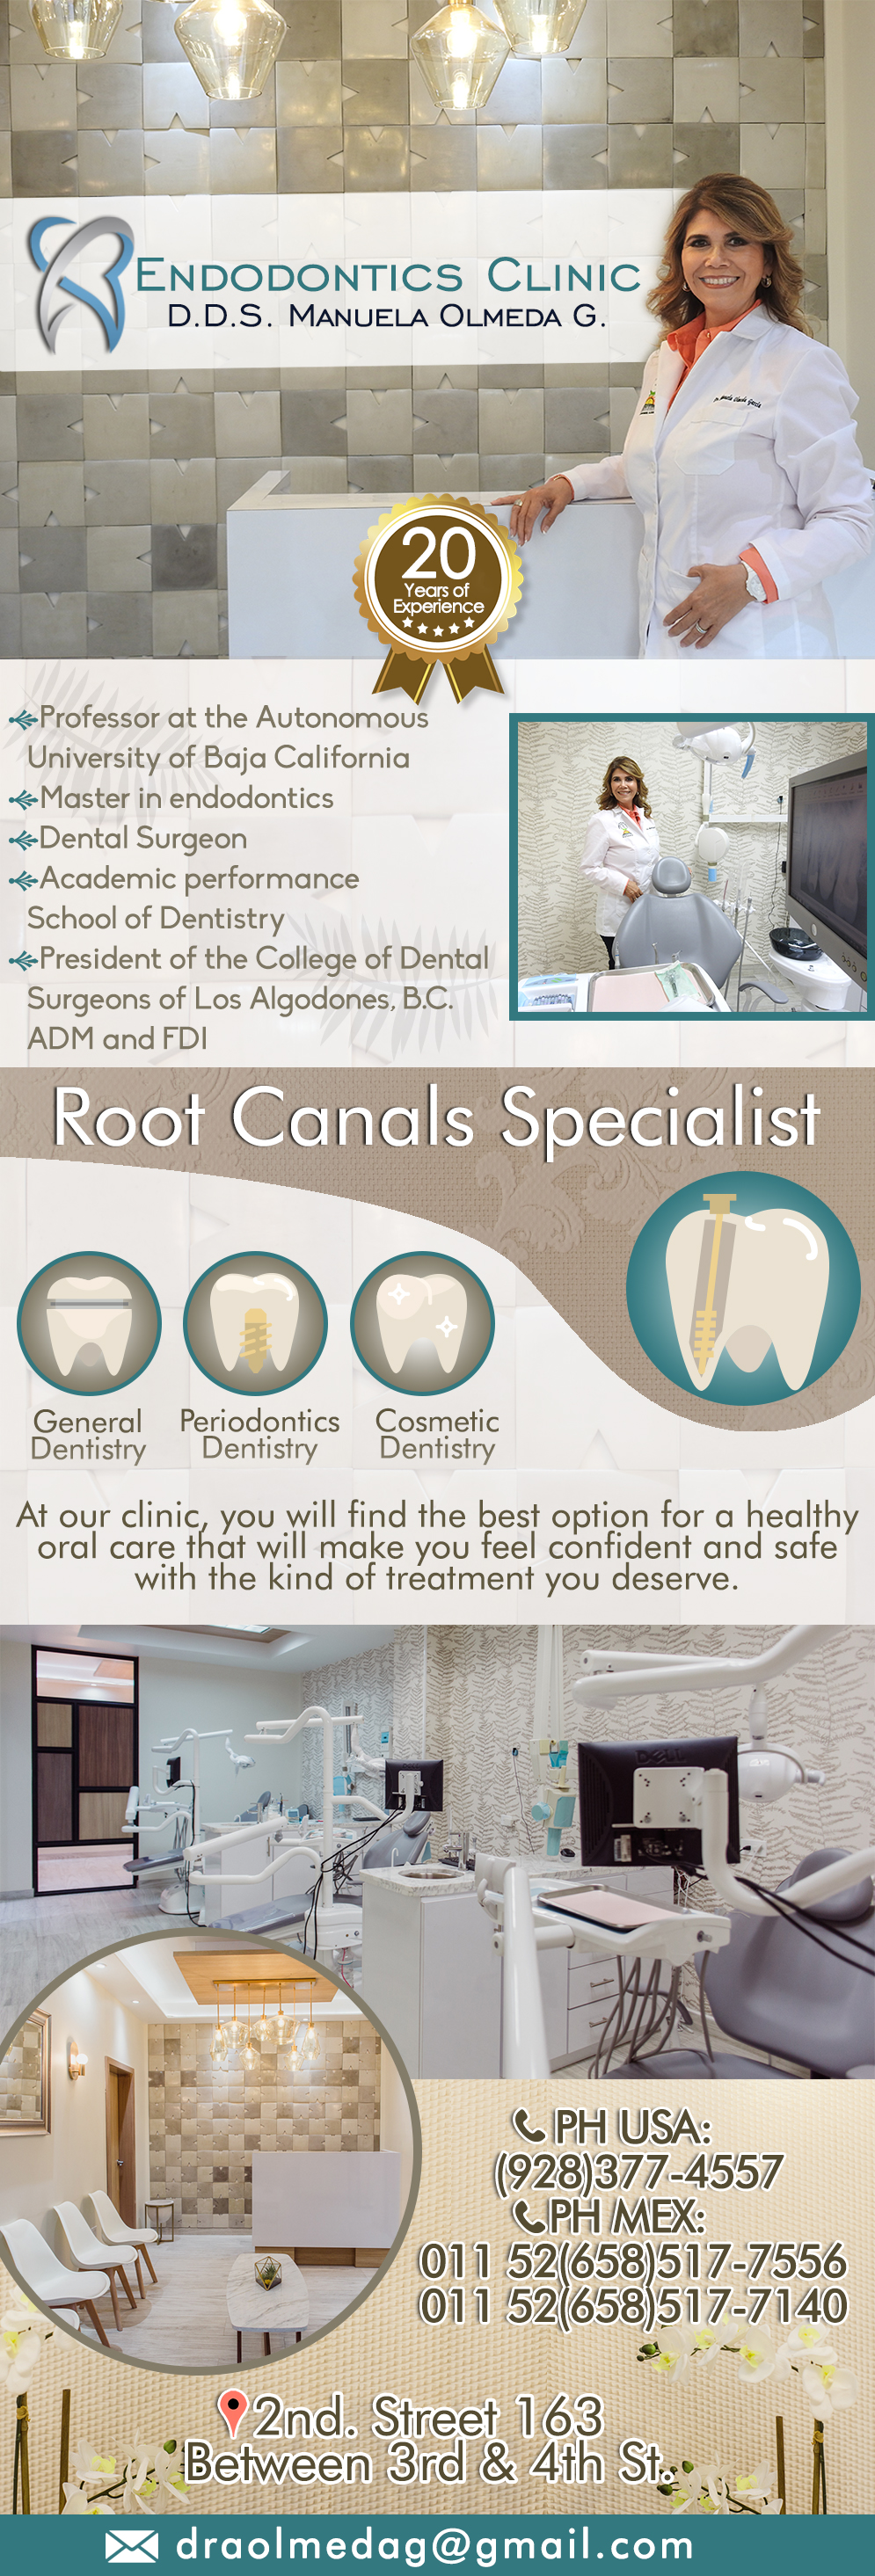 Dra. Manuela Olmeda Endodontics in Algodones  in Algodones  Endodontics Root Canal Treatment.          endodontics root canal treatments dra manuela dds olmeda endodontic  tratamiento dental dds. d.d.s.